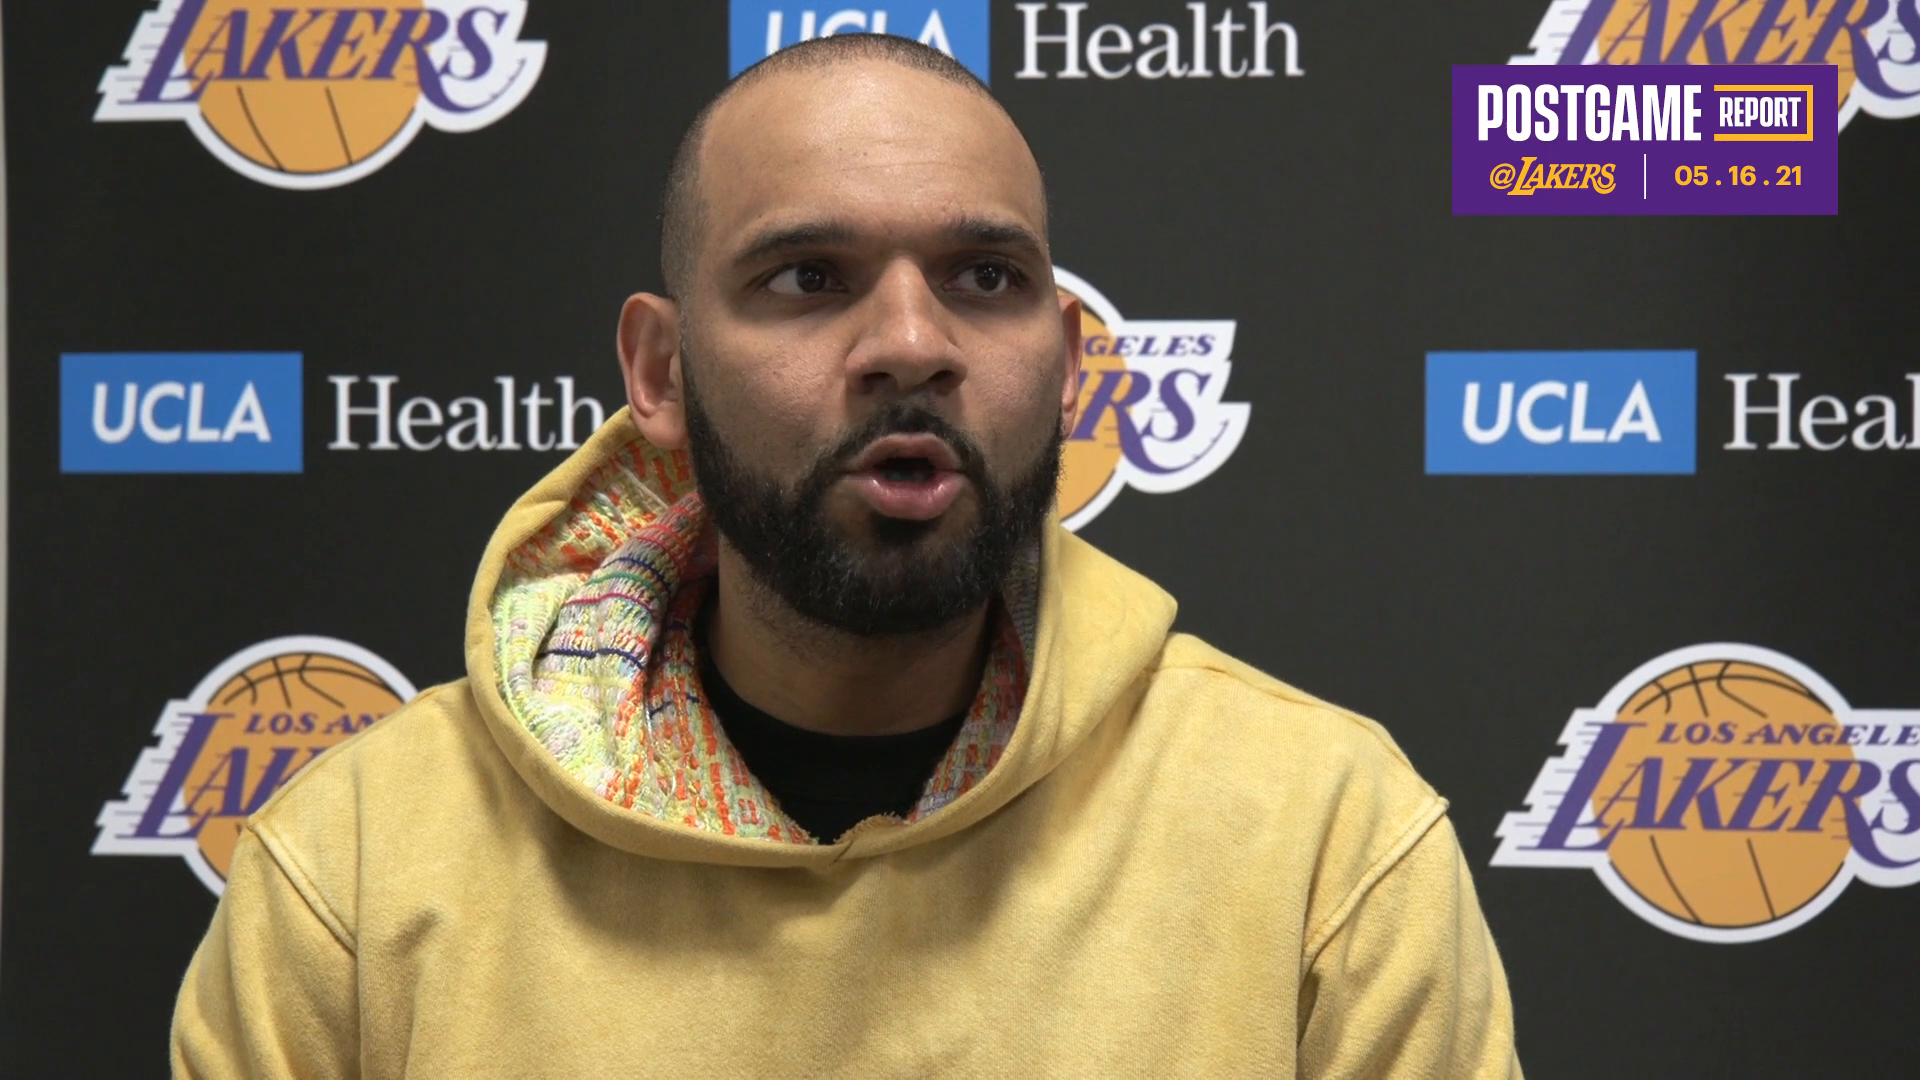 Lakers Postgame: Jared Dudley (5/16/21)